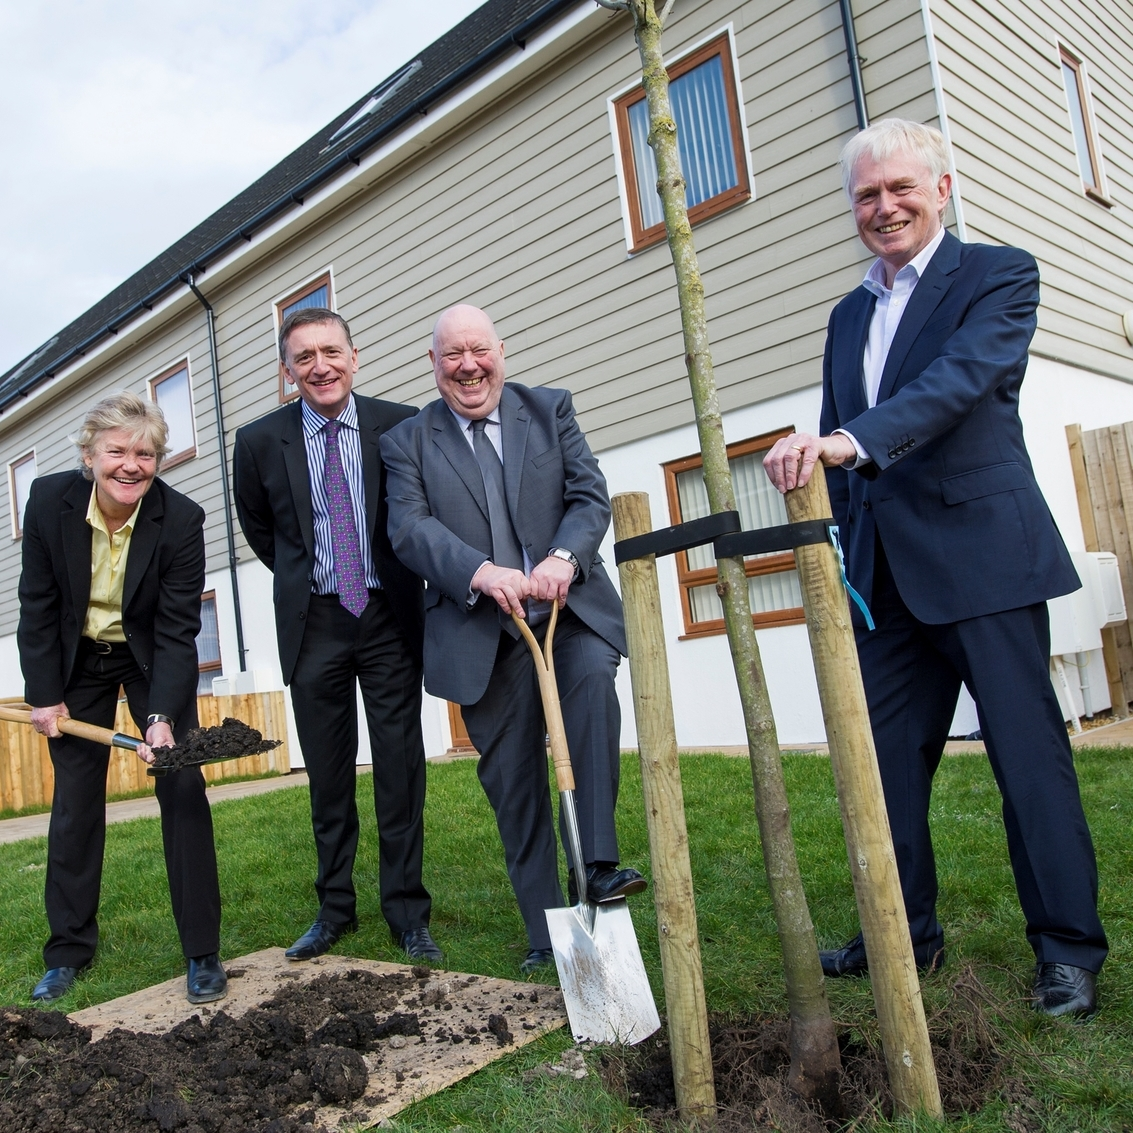 Planting one of the trees donated by the Mersey Forest, l-r, Liza Parry, chief executive of HPBC, Ian McDermott, Sanctuary's chief operating officer, Mayor Joe Anderson and Jim Gill, trustee, HPBC.